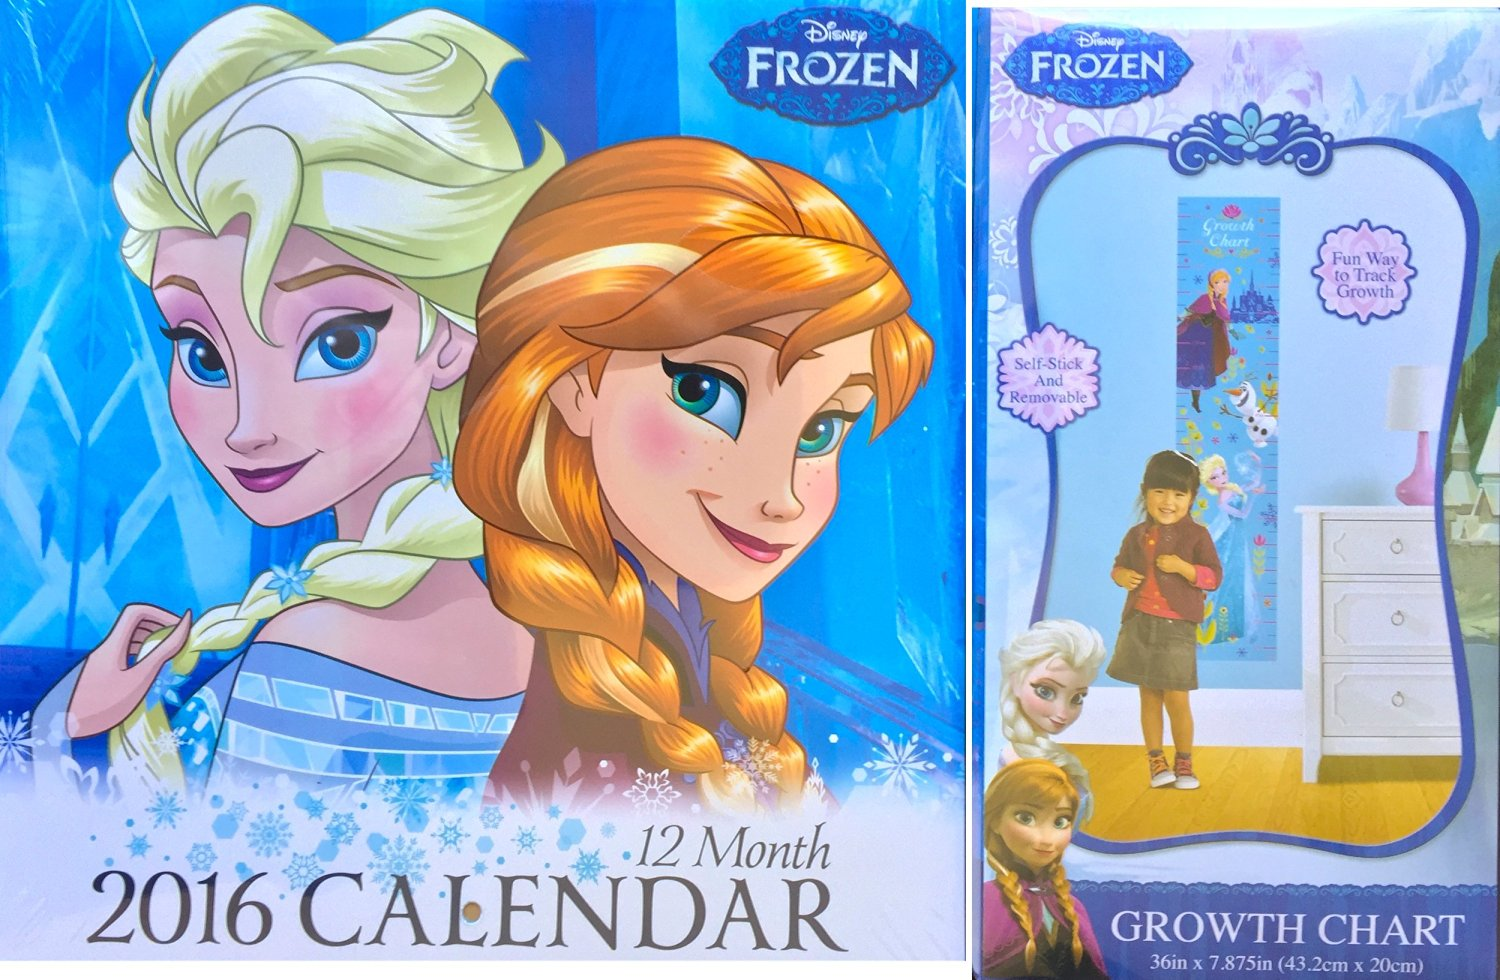 Disney Frozen Anna and Elsa 2016 Small Wall Decor Calendar Along with Disney Frozen Anna and Elsa Growth Chart, Fun Way to Track Growth with Calendar to Mark Dates